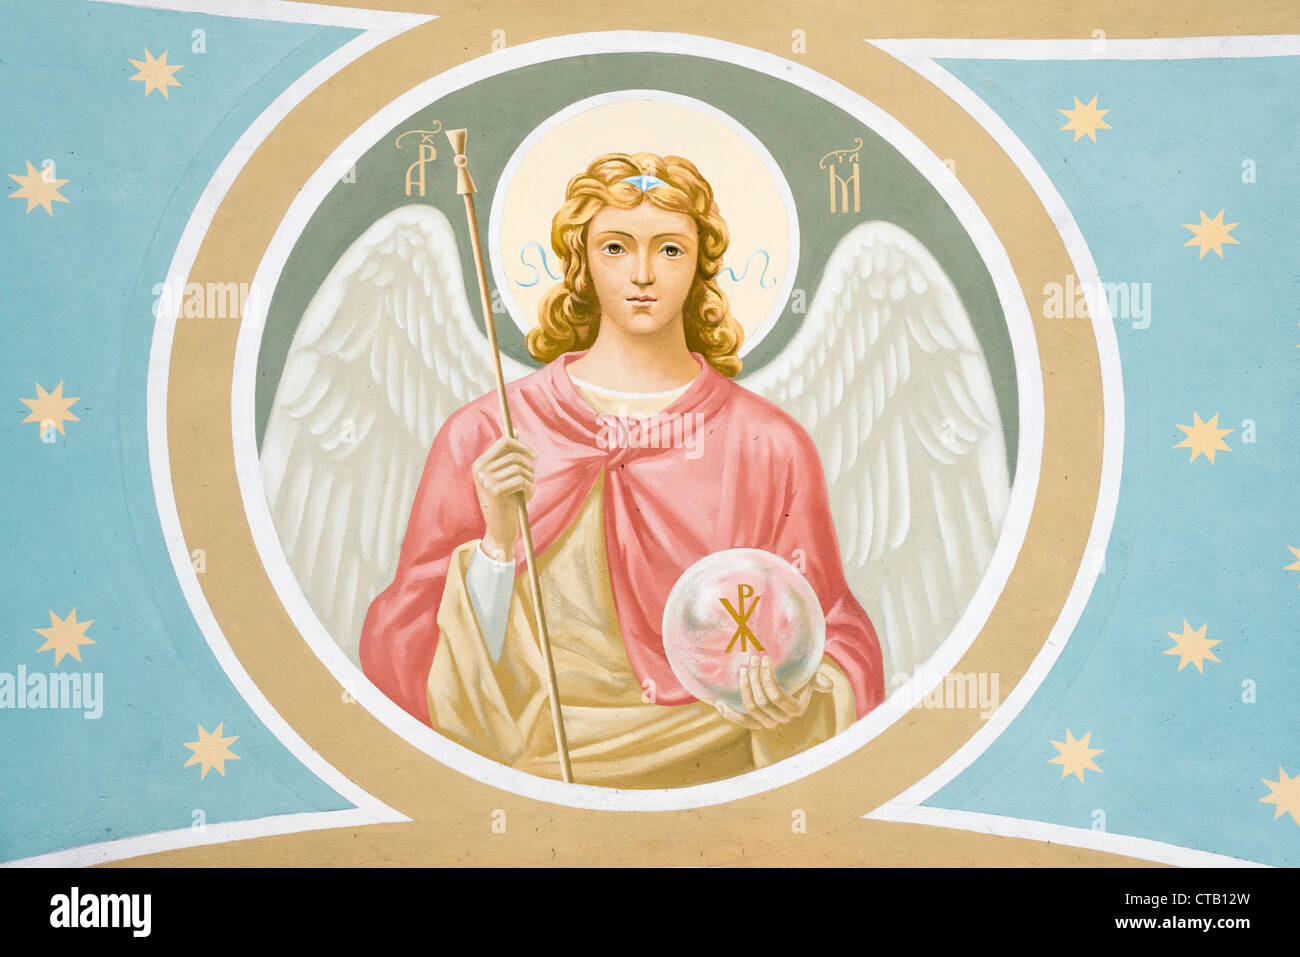 archangel michael icon stockfotos archangel michael icon bilder alamy. Black Bedroom Furniture Sets. Home Design Ideas